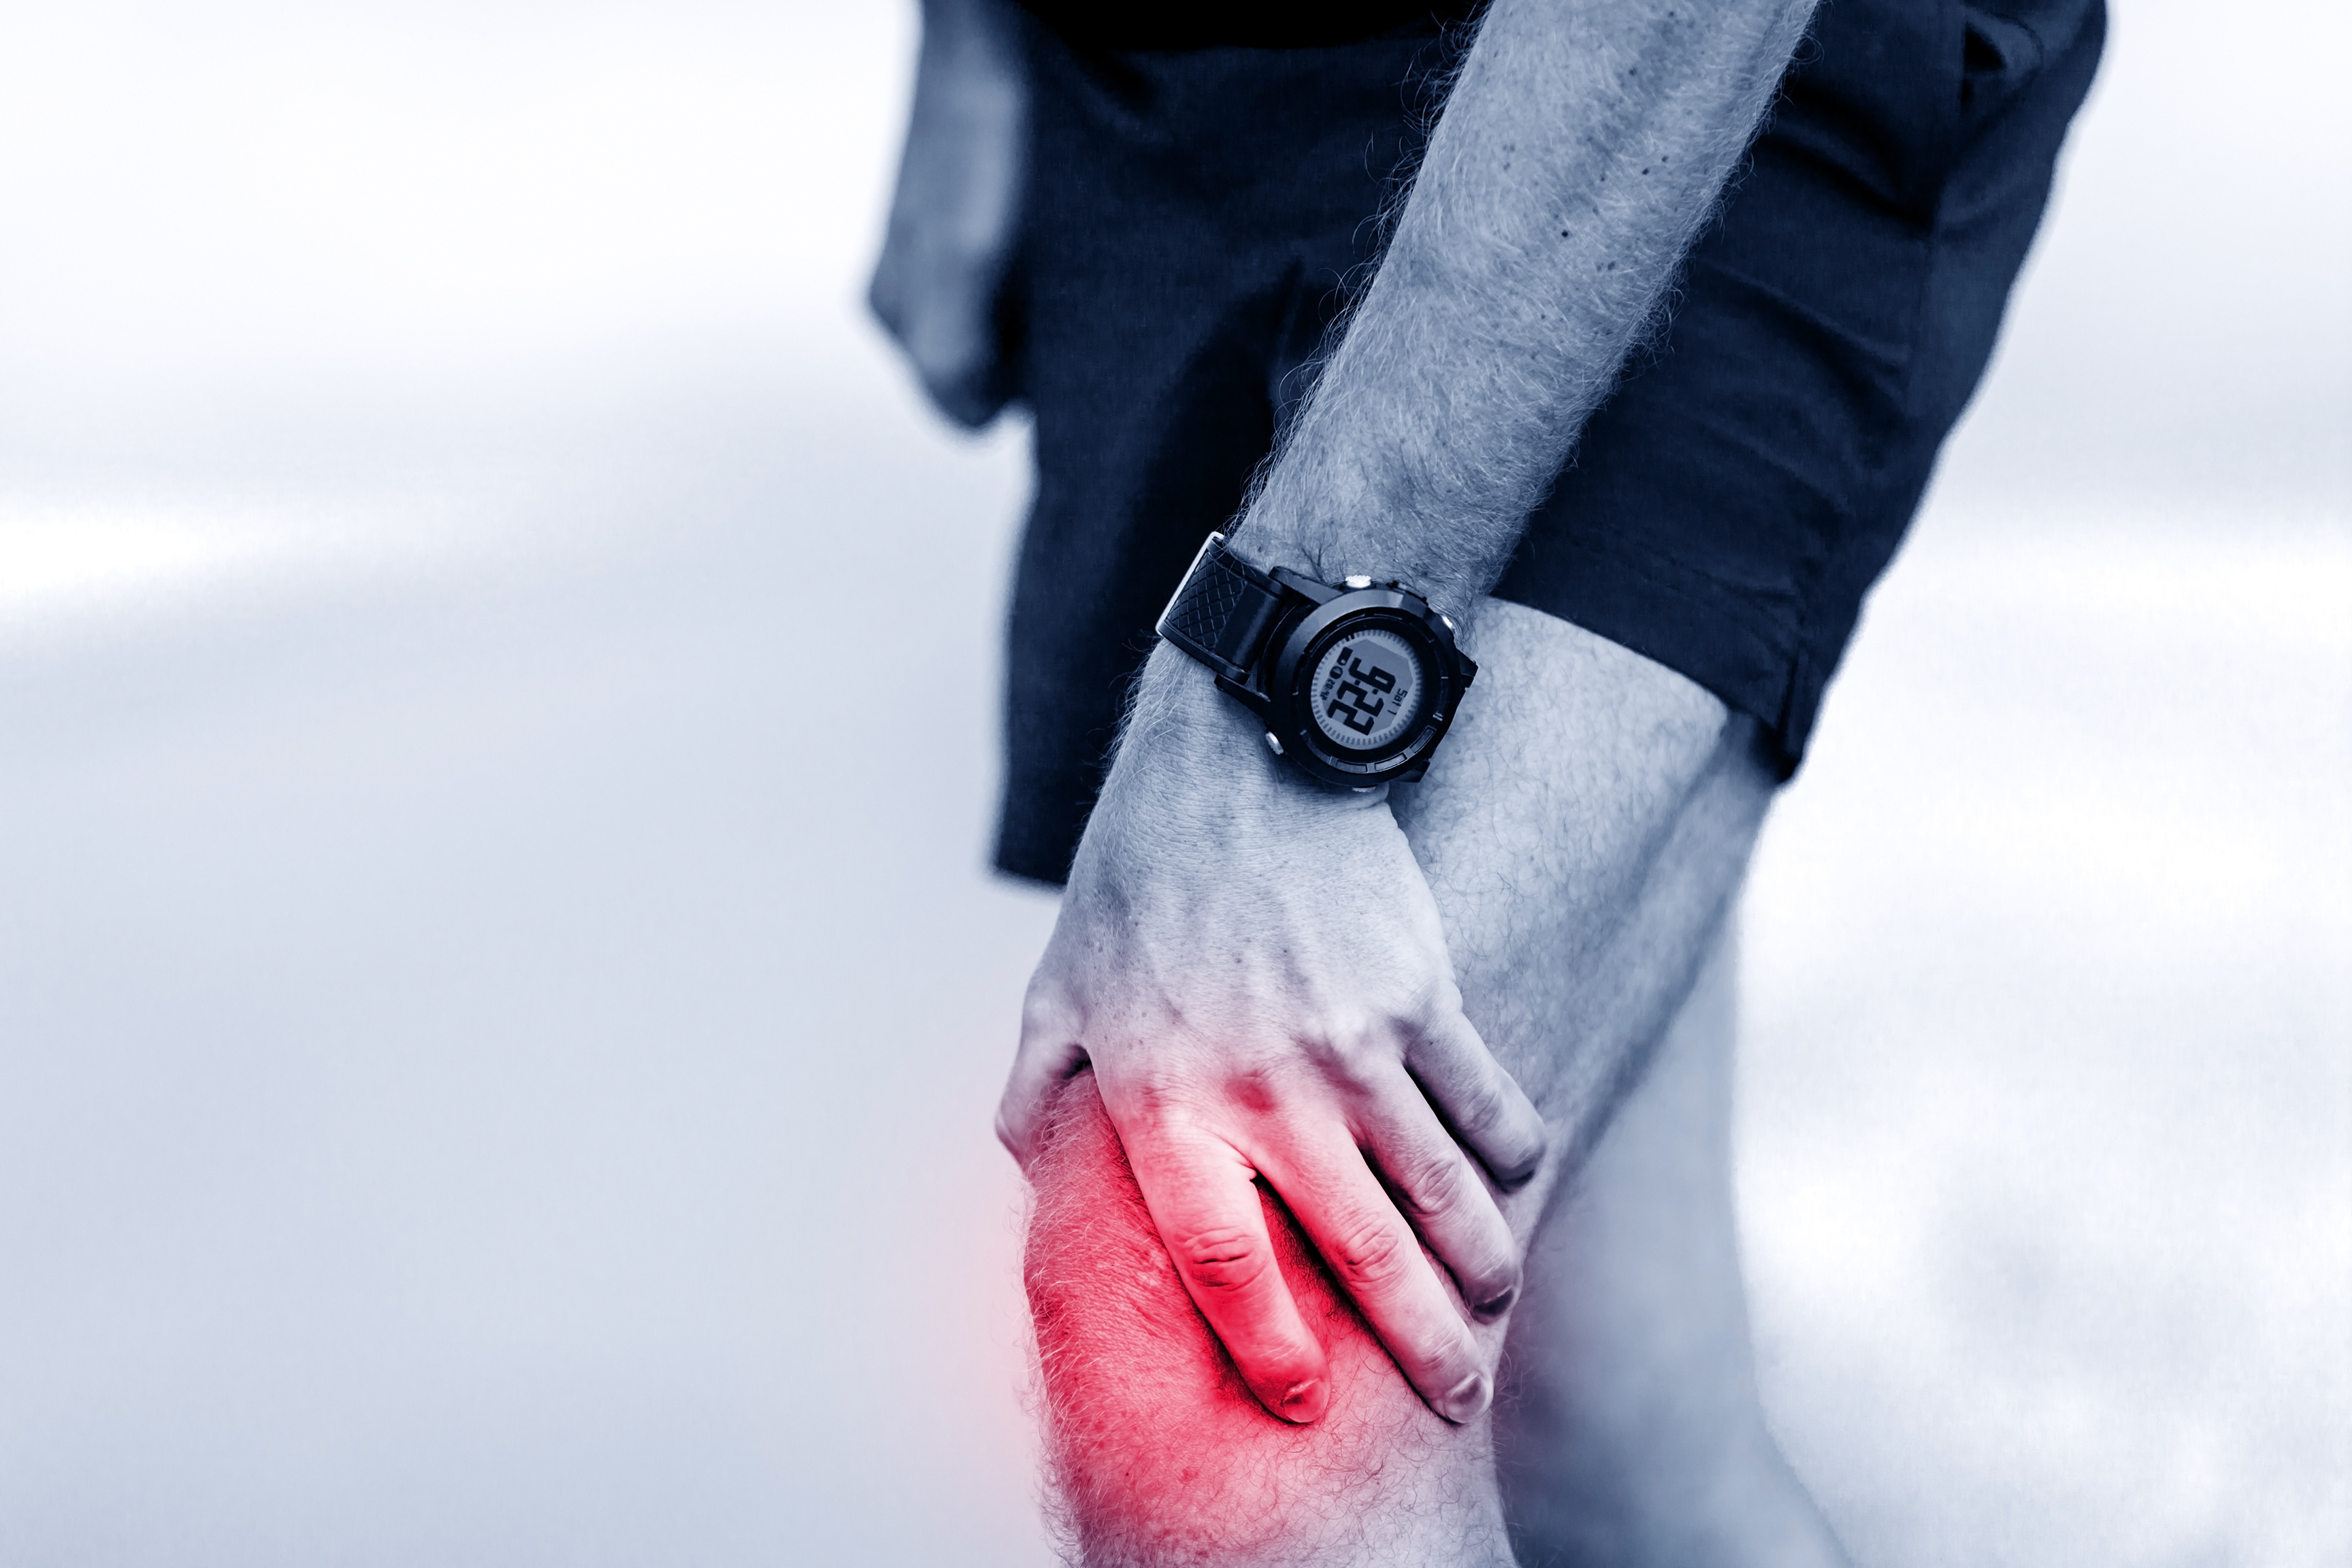 Knee pain runner leg and muscle pain running and training outdoors sport and jogging physical injuries when working out. Male athlete holding painful leg.